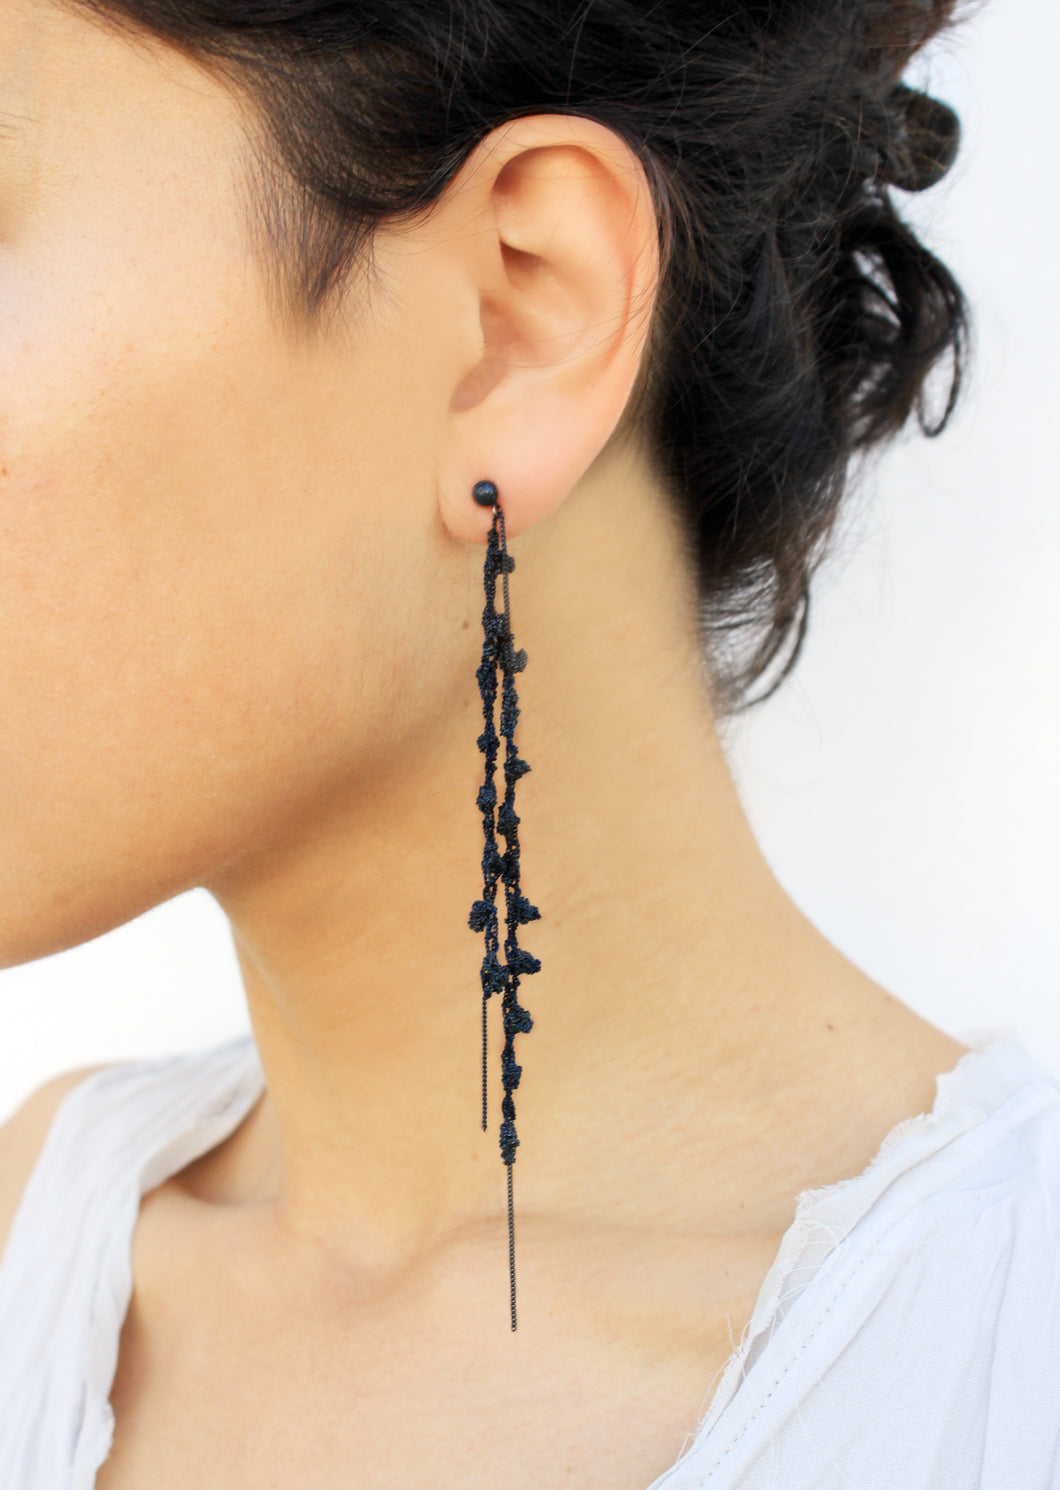 Punt Black Earrings - Long Oxidized Silver Earrings - MERCe